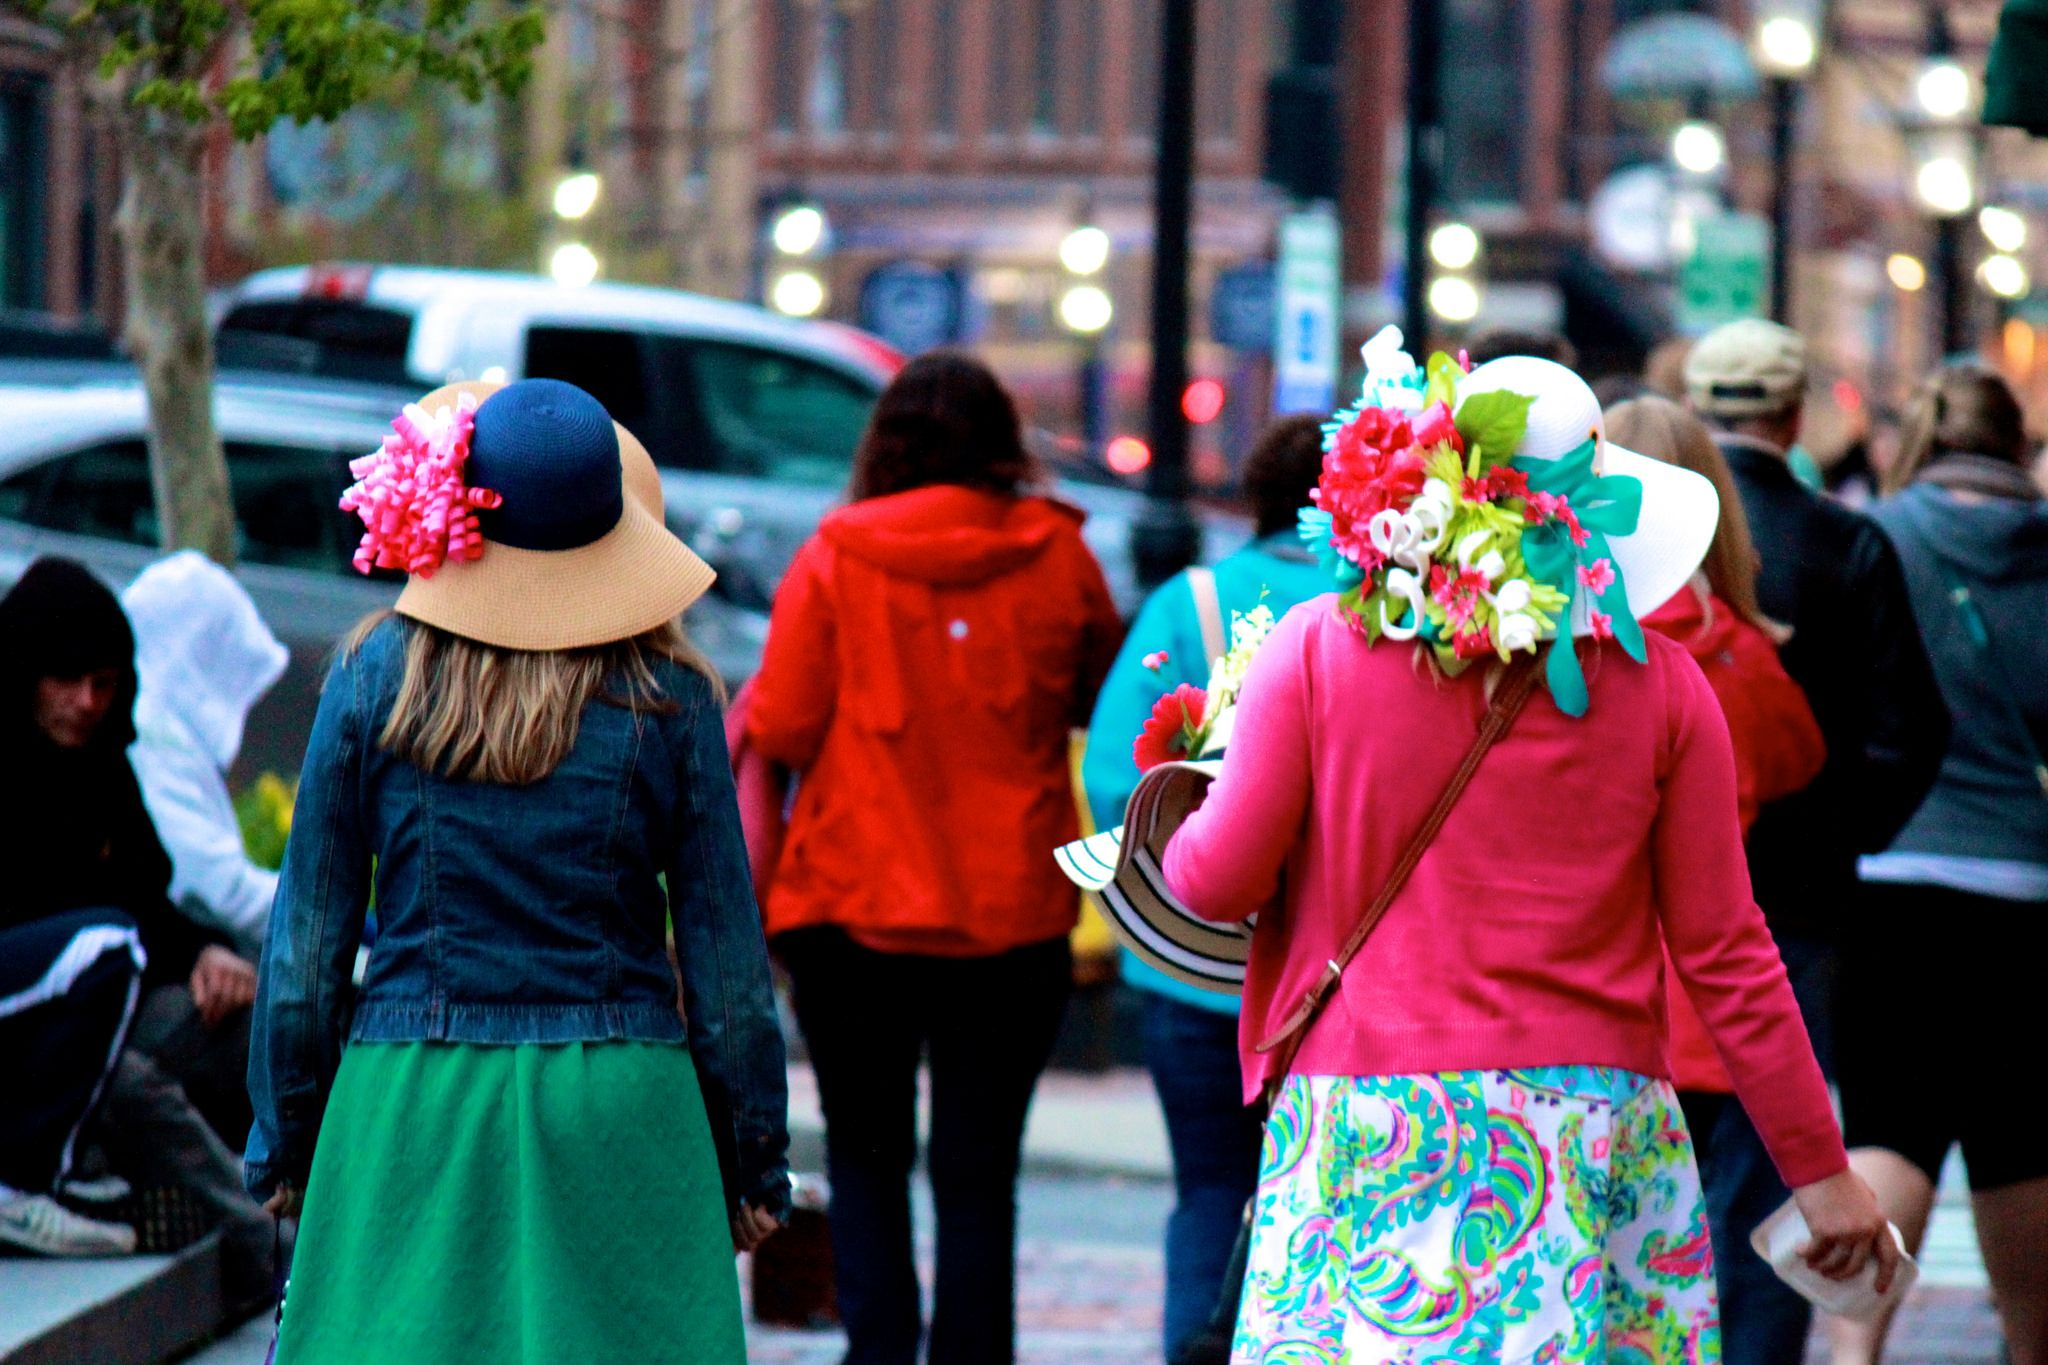 """Like a game of Dr. Seuss """"Do you like my hat?"""" Portsmouth, NH #woman #hat #kentuckyderby #portsmouthnh #canon"""